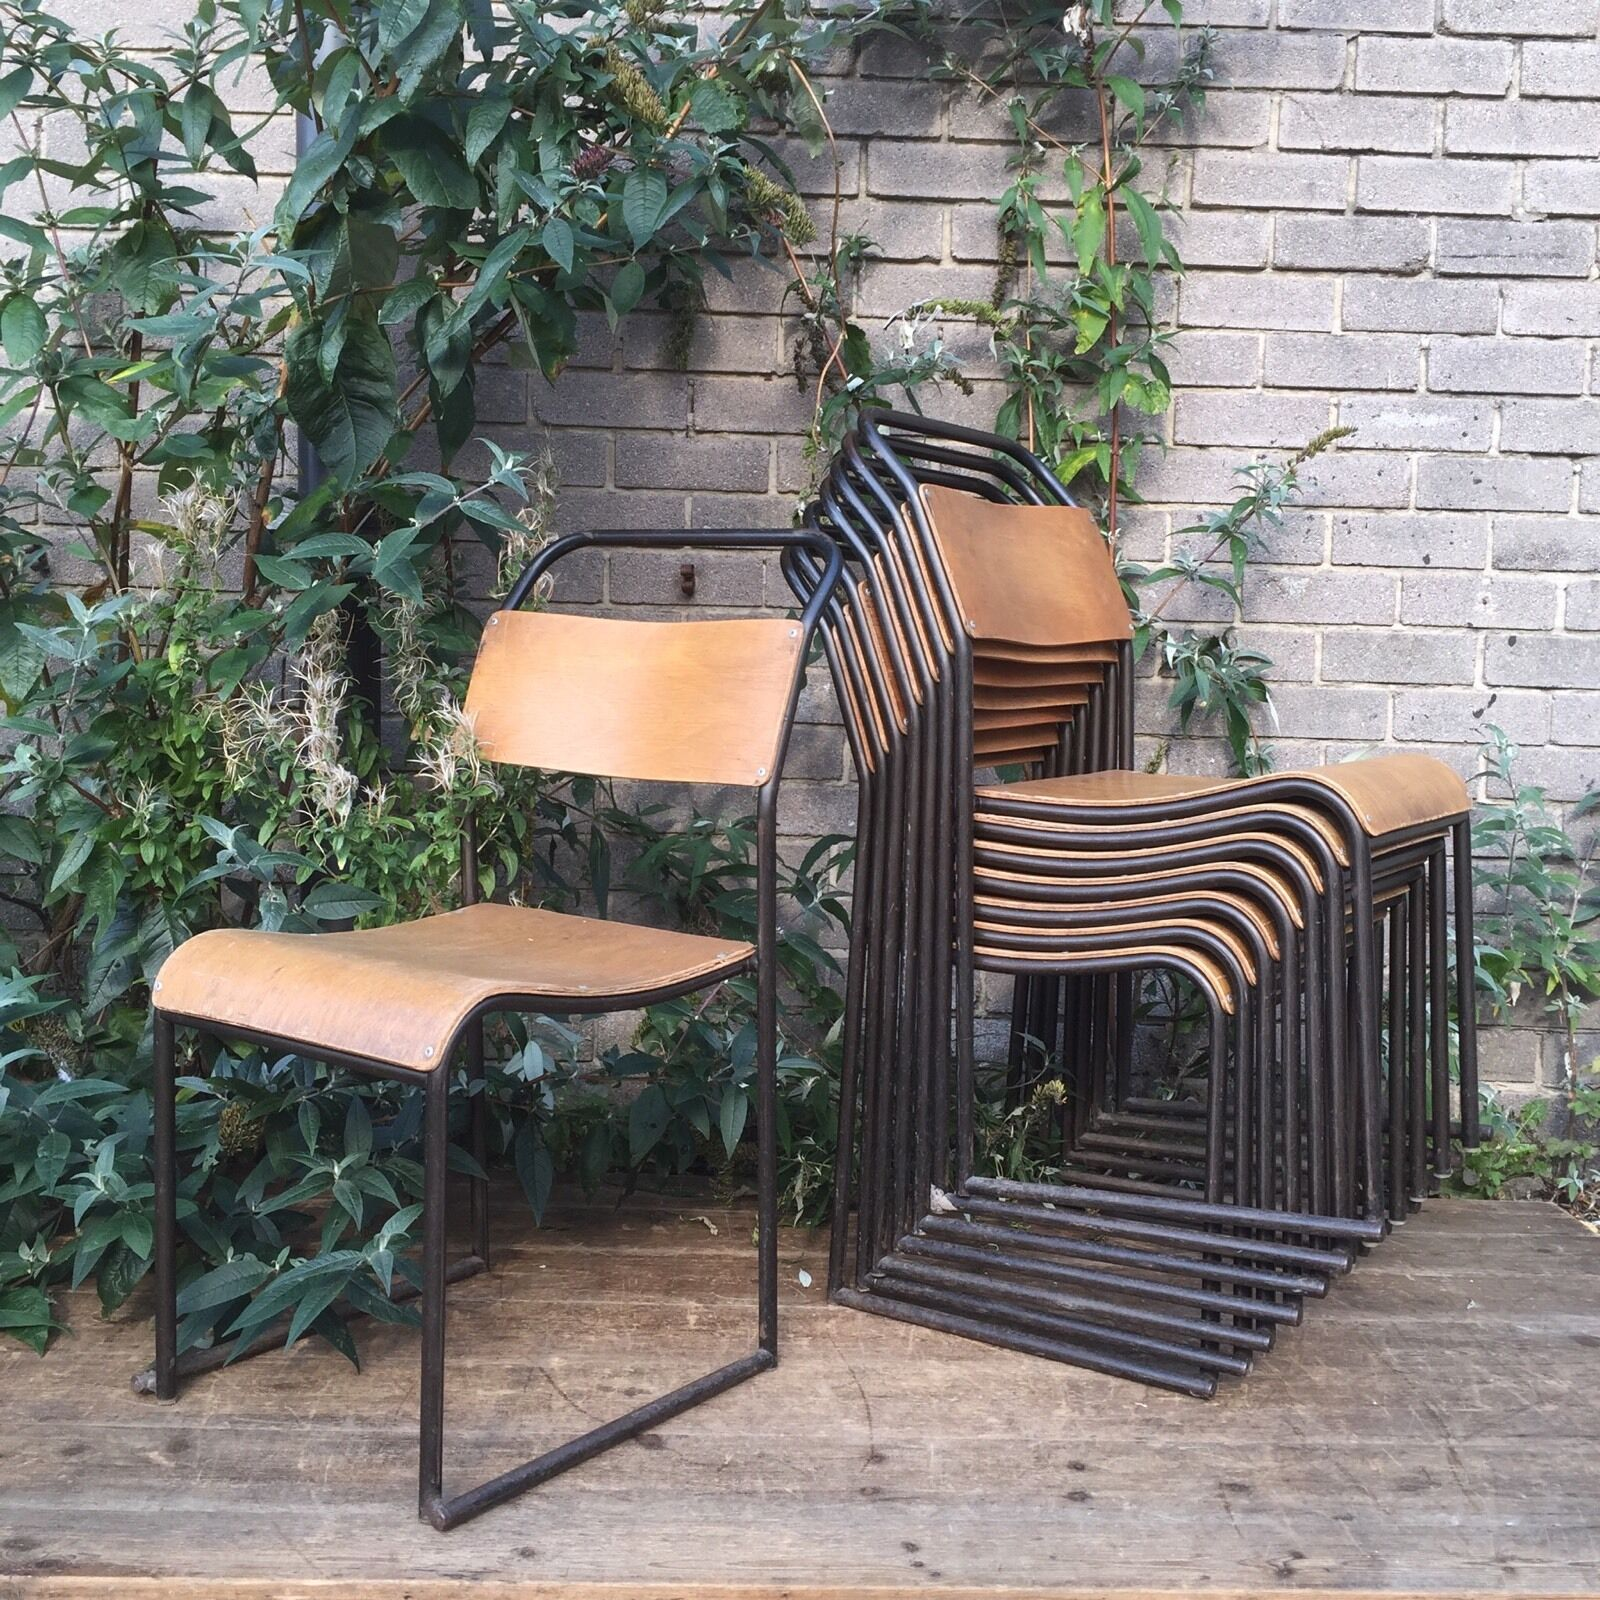 VINTAGE INDUSTRIAL TUBULAR STACKING CHAIRS - CAFE CHAIRS - Lots Available